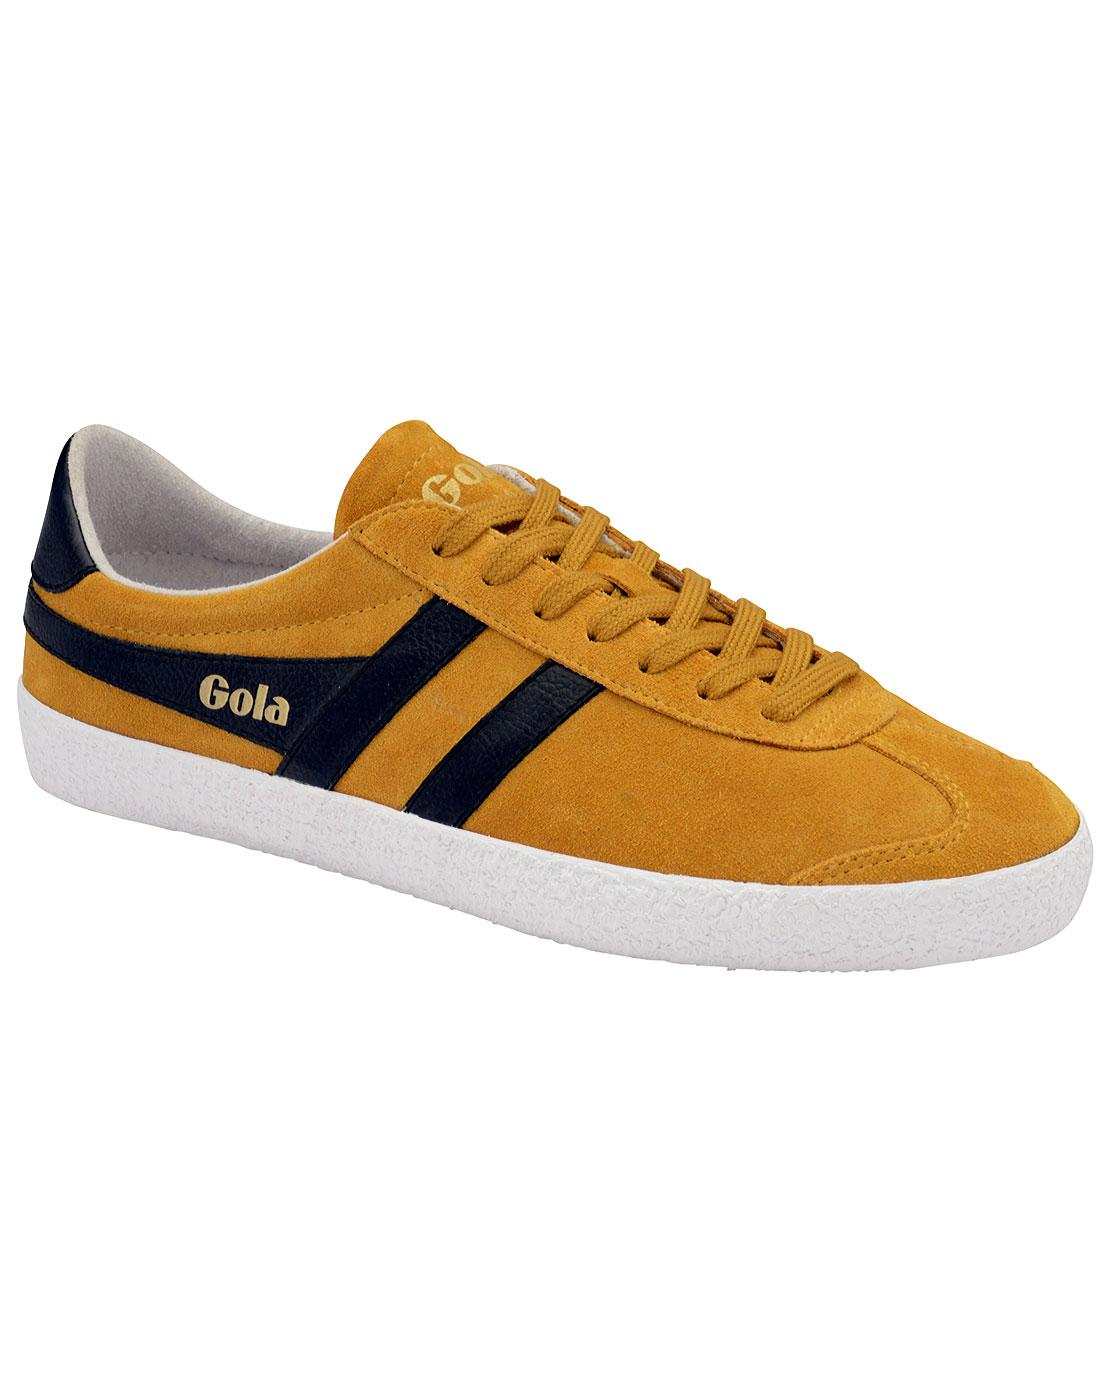 Specialist GOLA Retro 1970s Suede Trainers (Y/B)